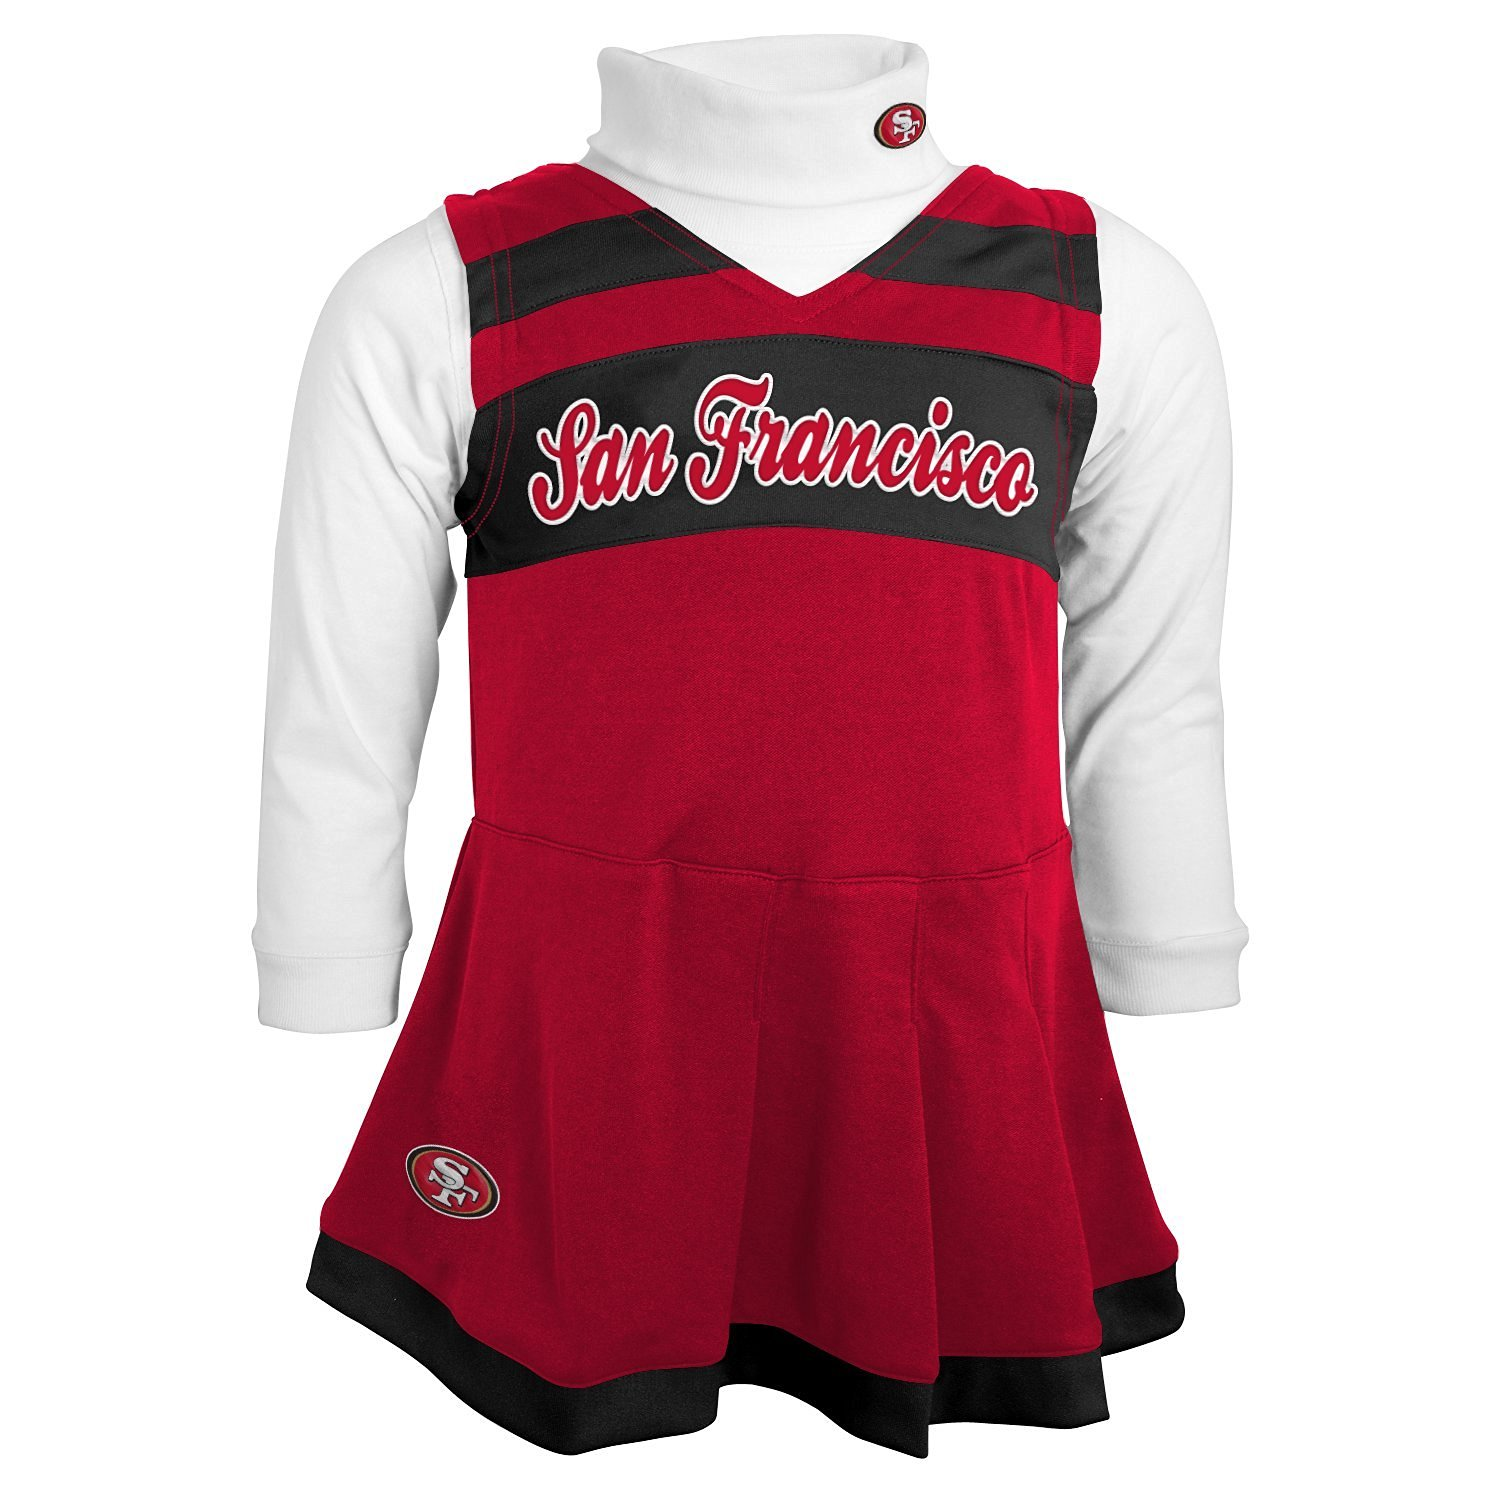 4f59cf1ce7c Get Quotations · NFL San Francisco 49ers Girls Cheer Jumper Dress with  Turtleneck Set